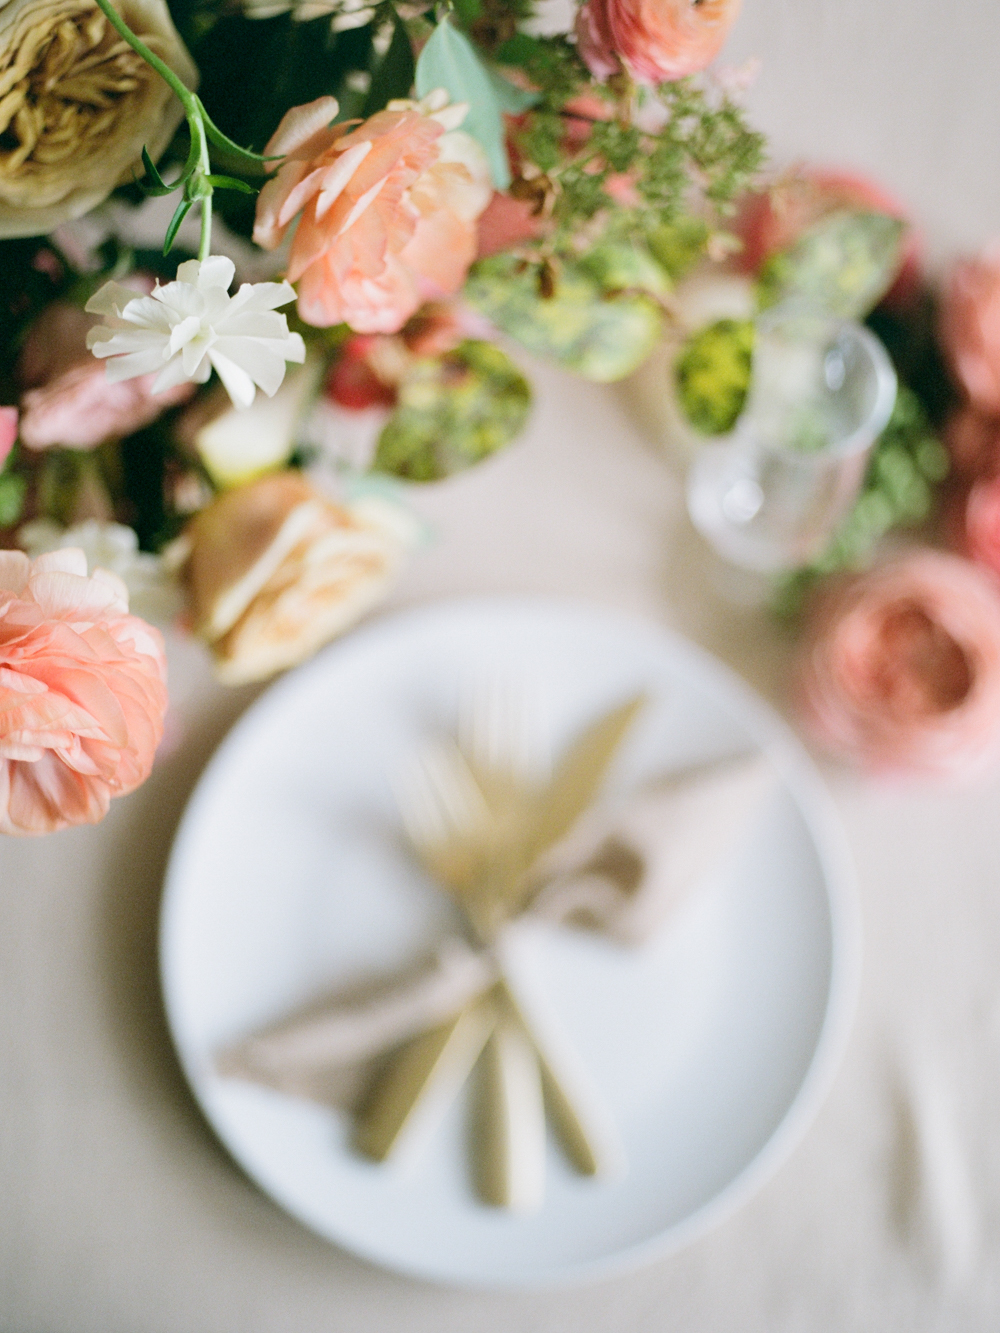 film wedding photographer - Houston wedding photographer - intimate wedding photographer - Christine Gosch - fall wedding inspiration - blush fall wedding - wedding flowers - fall wedding flowers - wedding table inspo-5- Maxit Flower Design.jpg